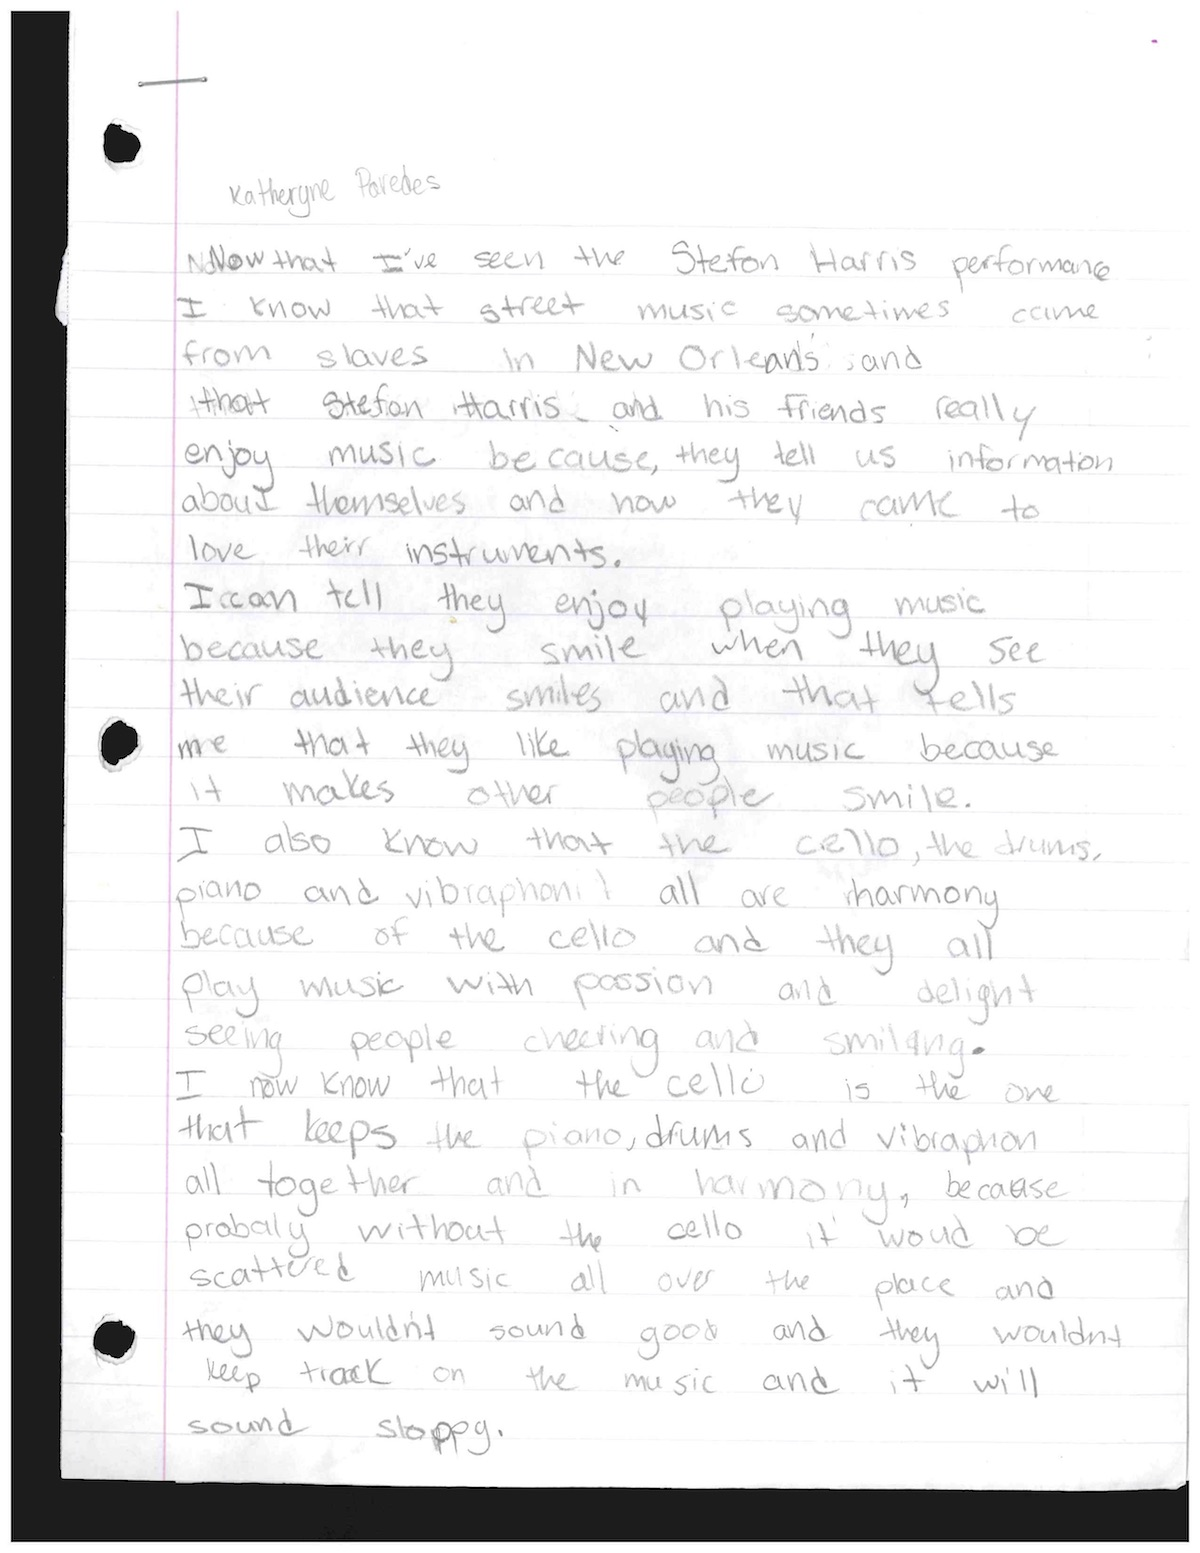 Katheryne Paredes - 4th grade - PS 49 Bronx, Ms. Goldfine, essay